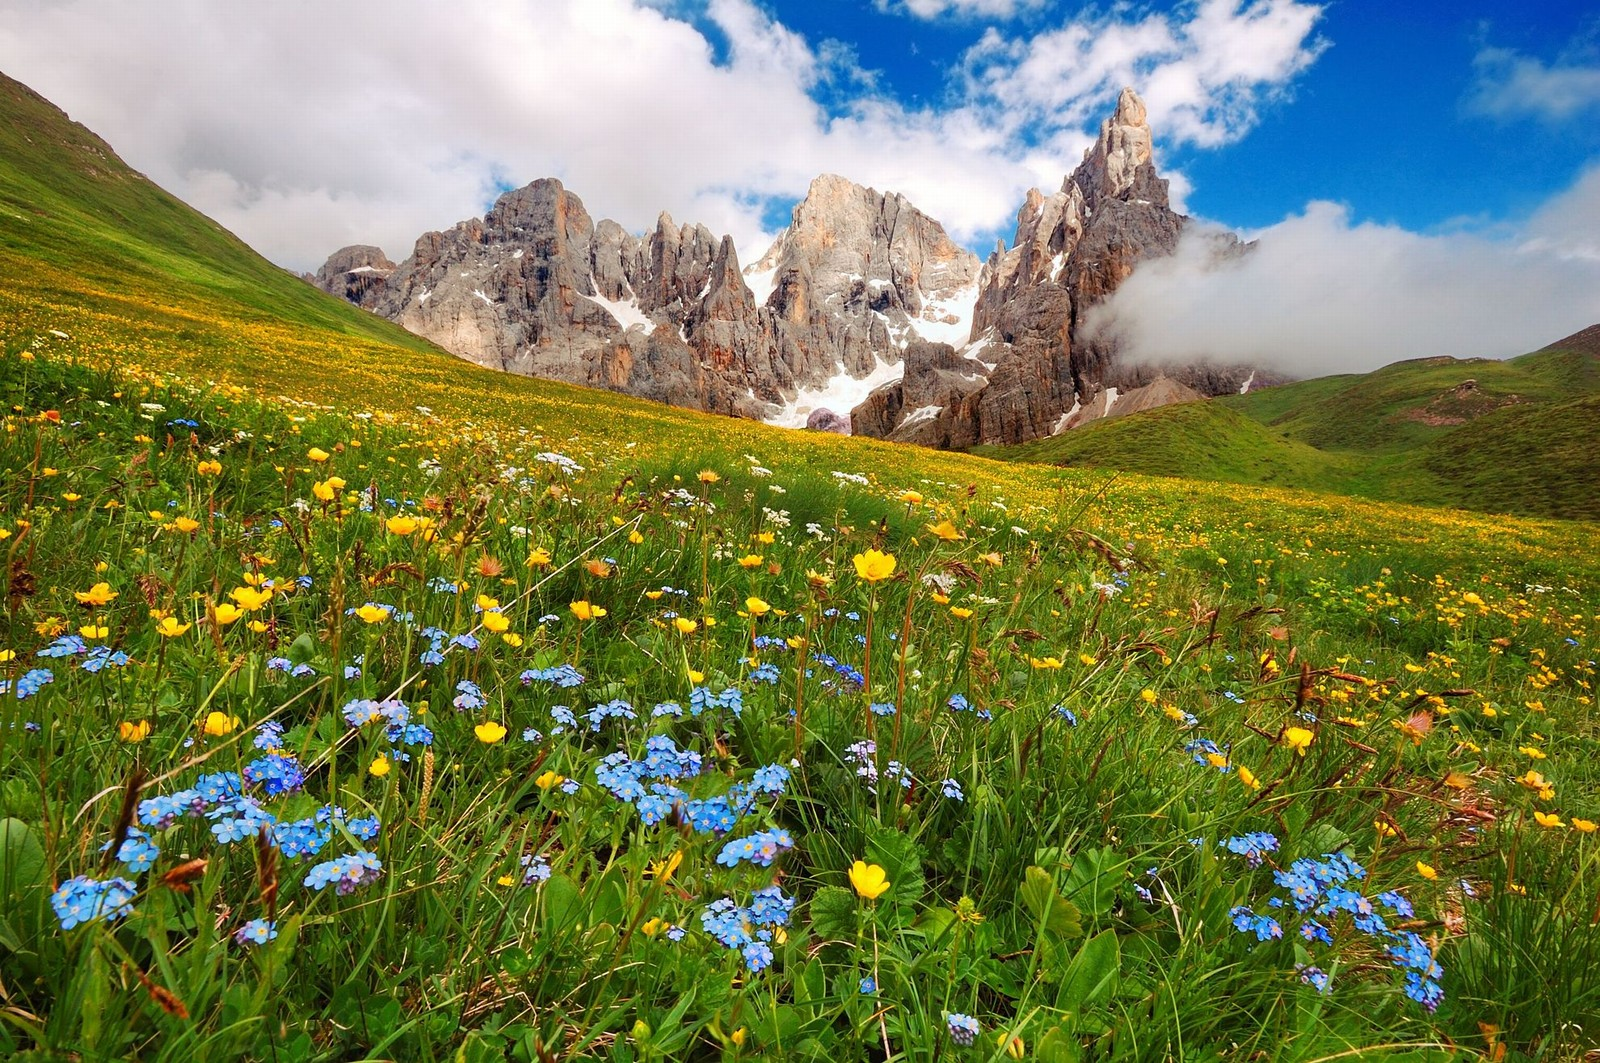 PALE DI SAN MARTINO: DOLOMITIC LOVE